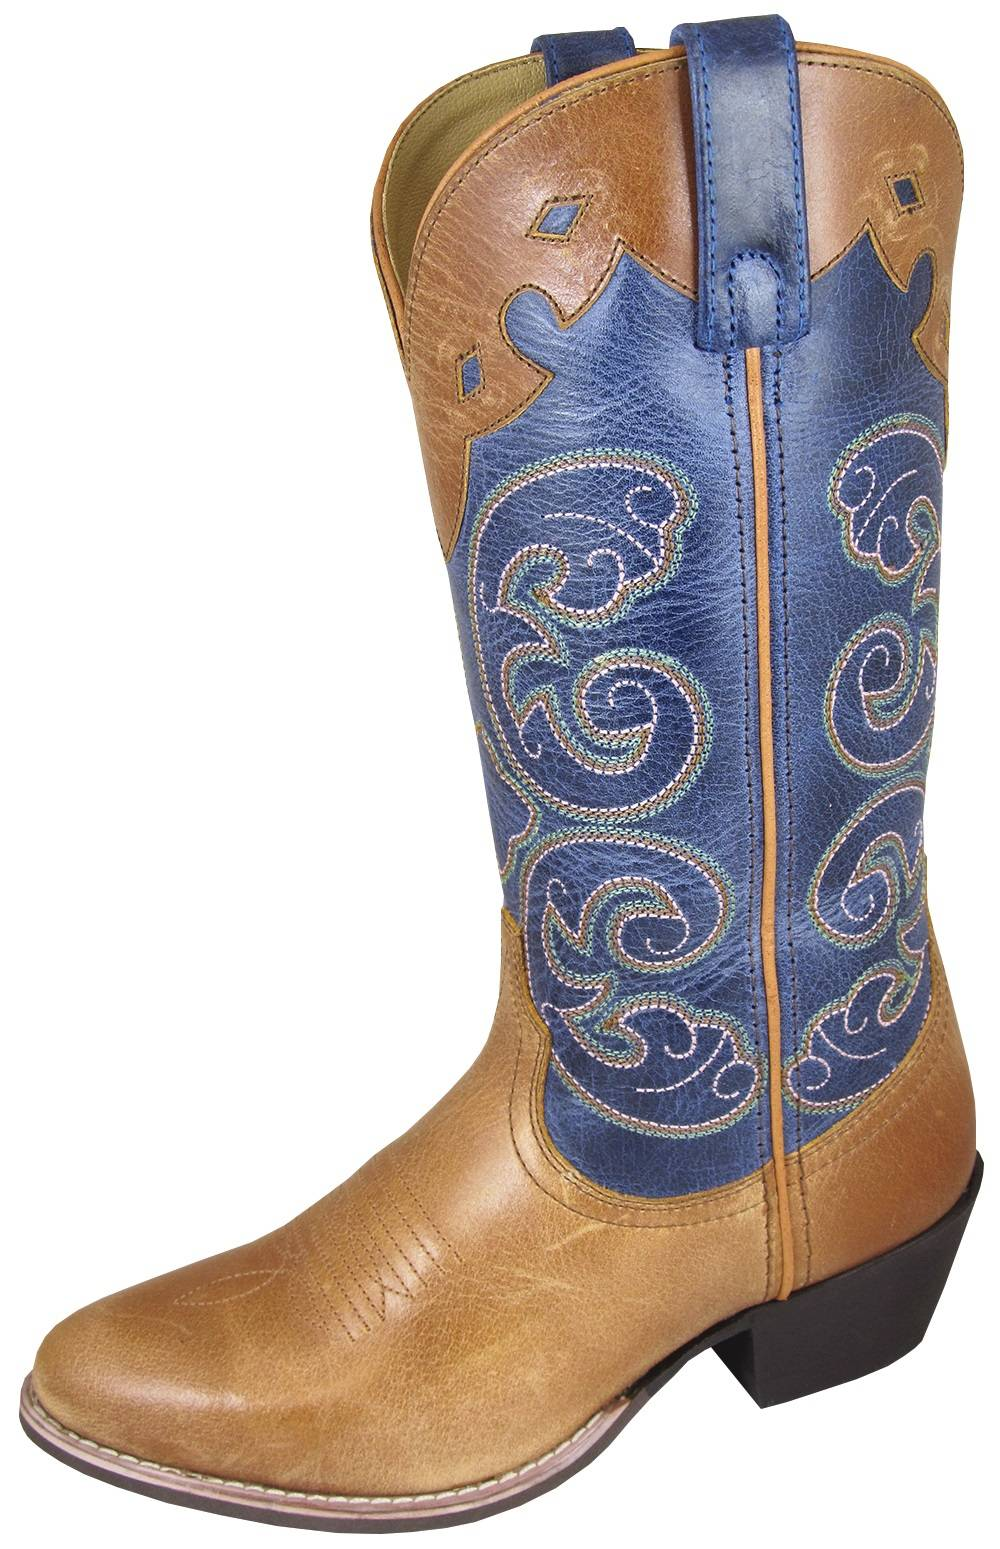 Smoky Mountain Apline Boots - Ladies - Tan/Blue